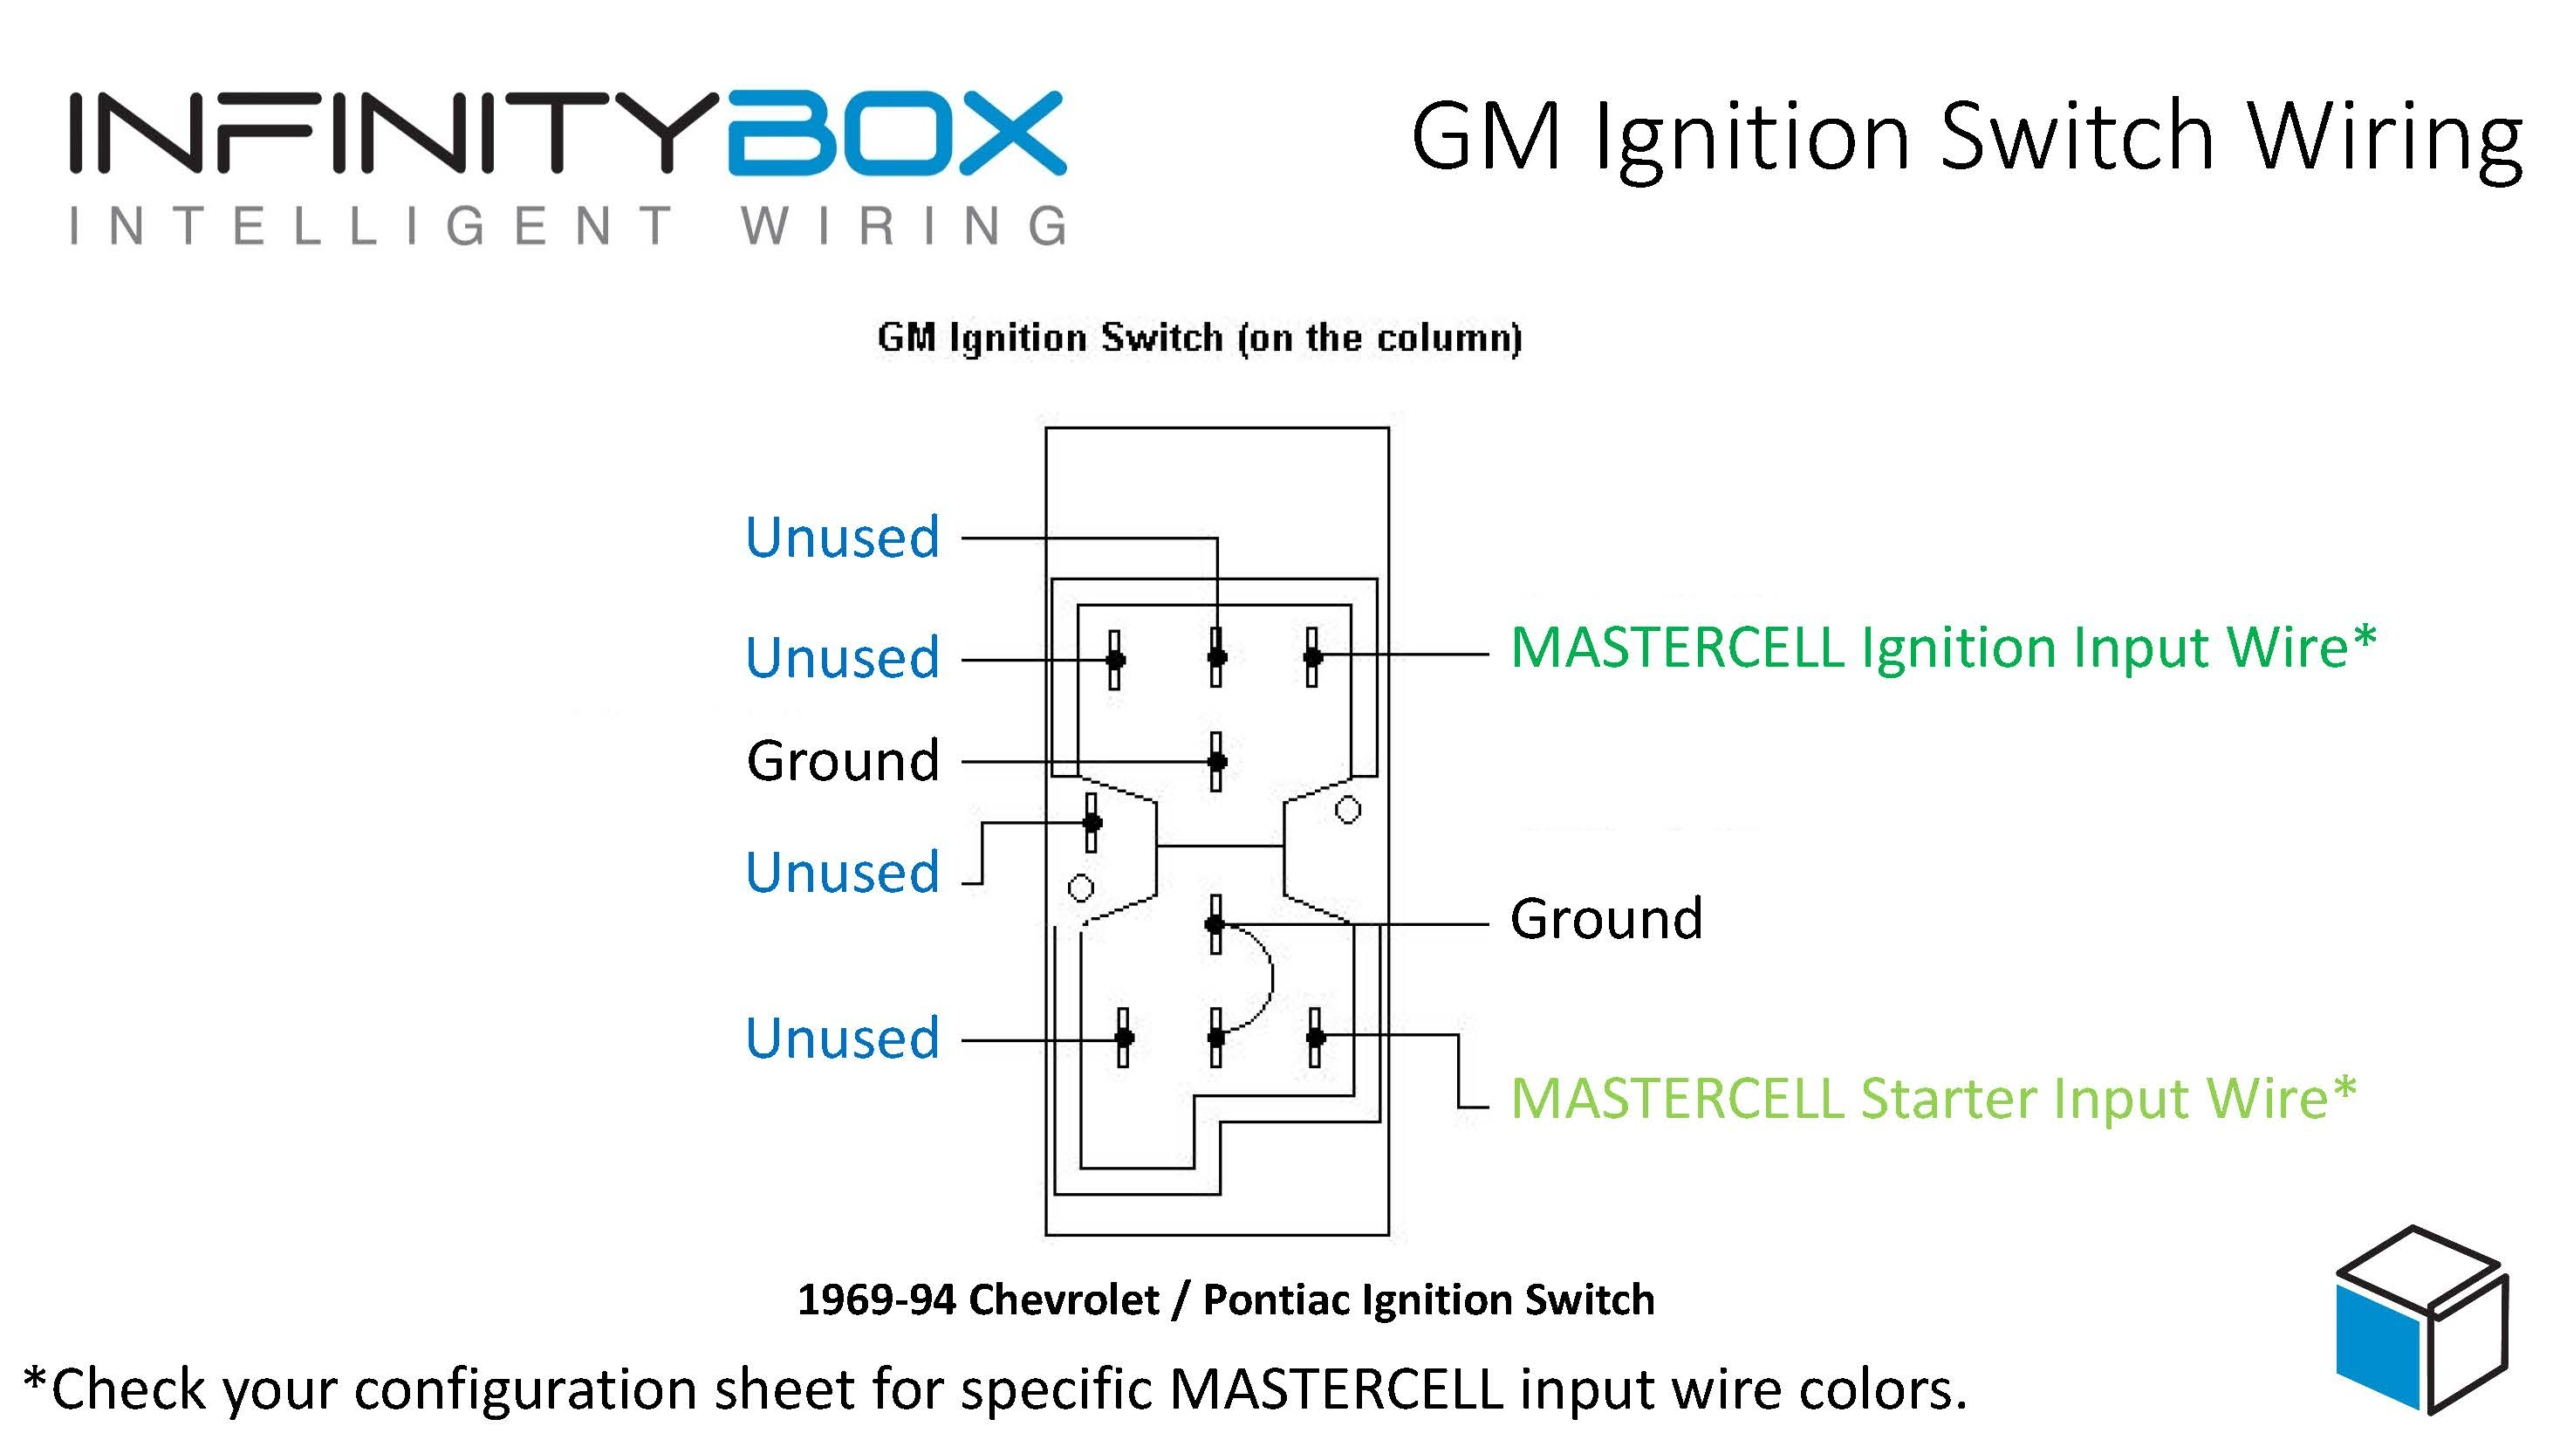 1970 Gm Ignition Switch Wiring Diagram | Wiring Diagrams Show relate | Chevrolet Ignition Wiring |  | spaghettihauslimone.it